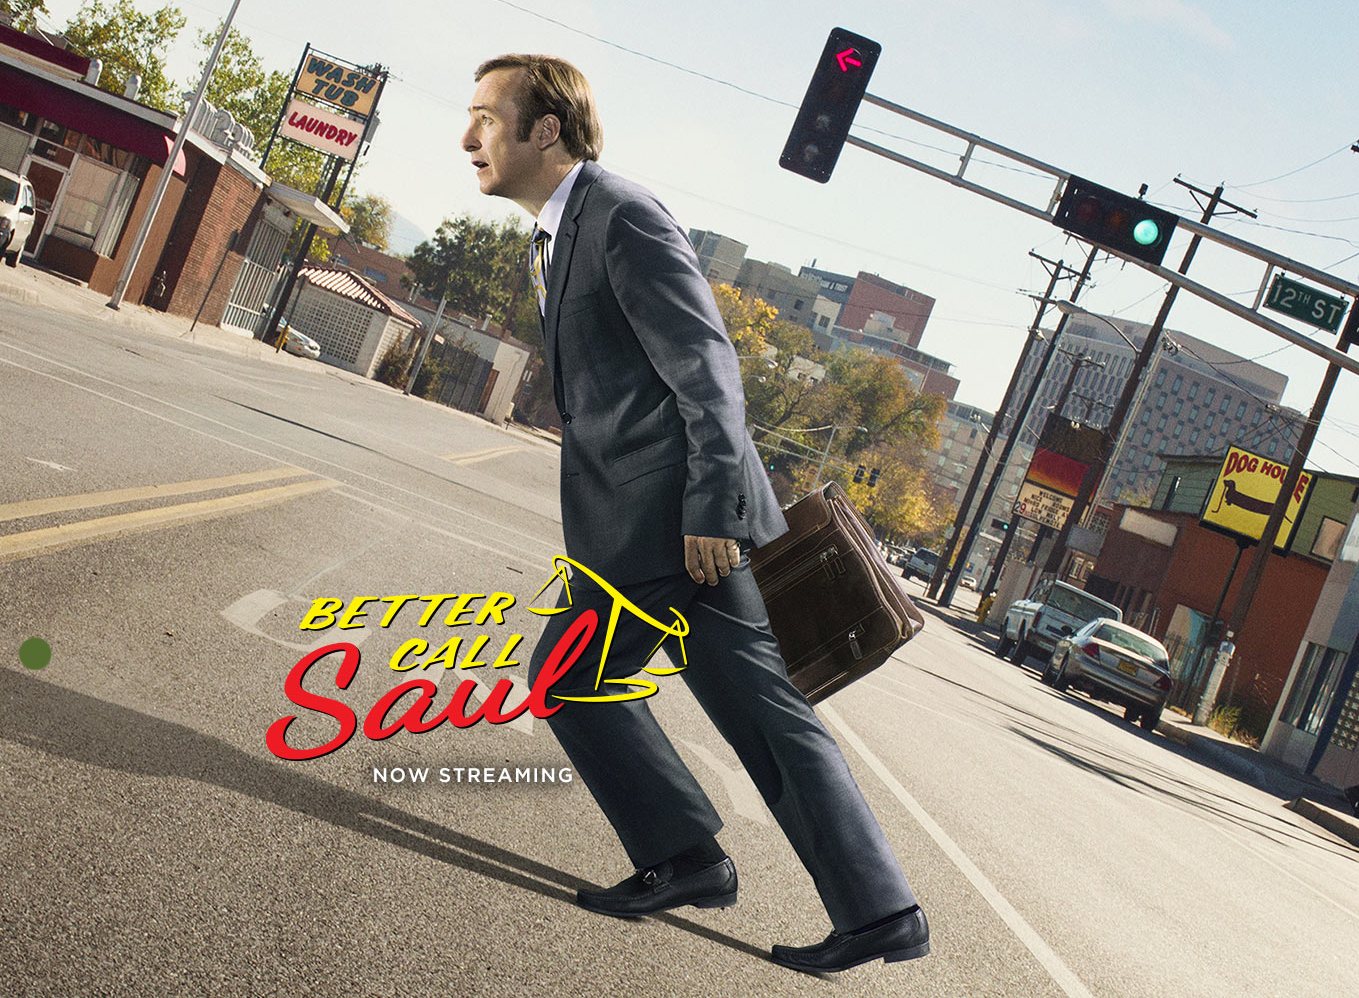 """<p>The new season of """"Better Call Saul"""" will be available in 4K and to download for offline viewing this year on Stan.</p>"""